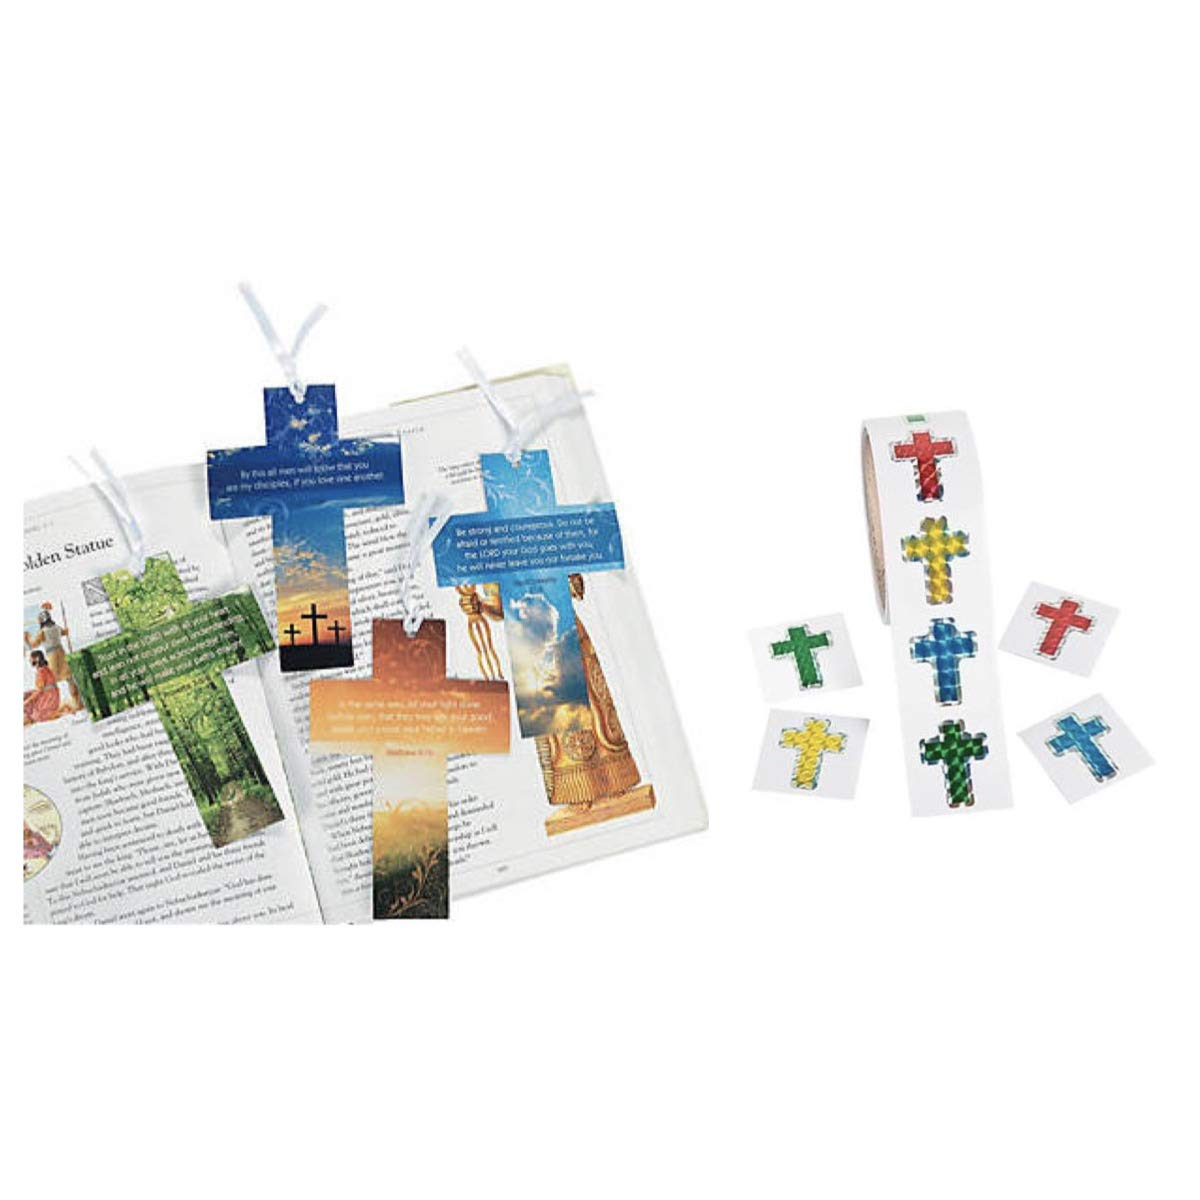 100 Prism Cross Stickers & 24 Religious Inspirational Bookmarks - 6'' w/Live Photography - Christian Gift - Education VBS Vacation Bible School Church Groups Christmas